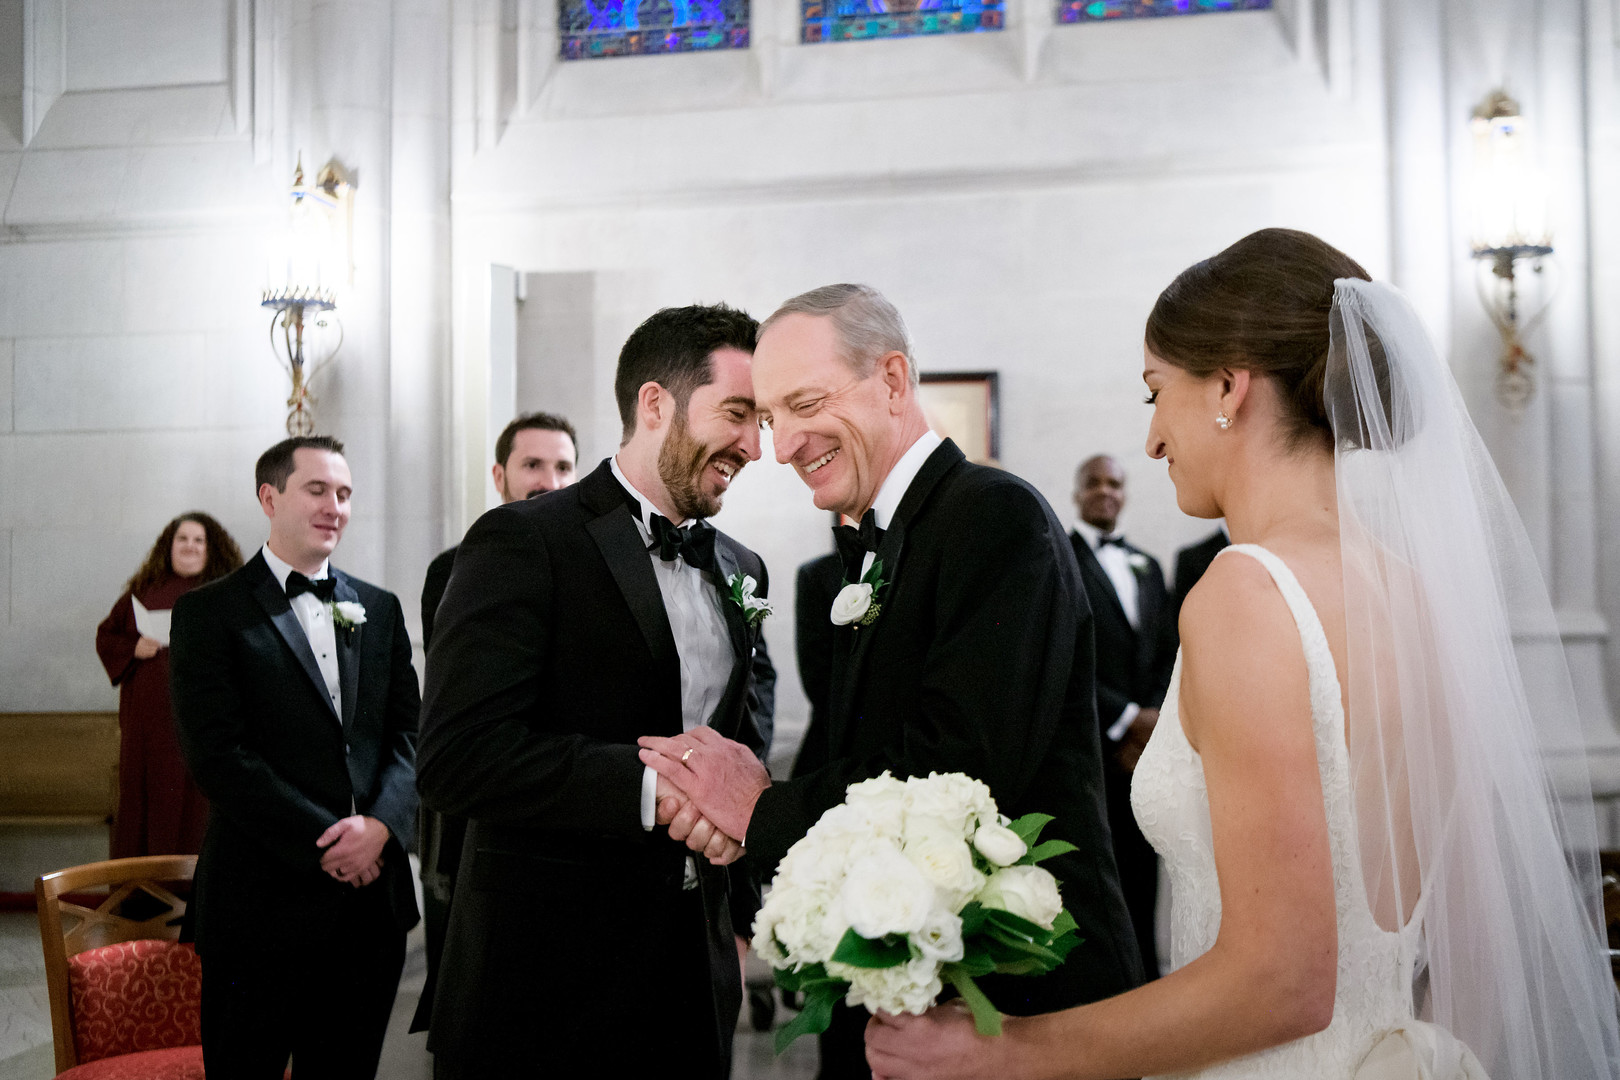 Romantic Chicago Fall Wedding at Union League Club of Chicago captured by Julia Franzosa Photography.